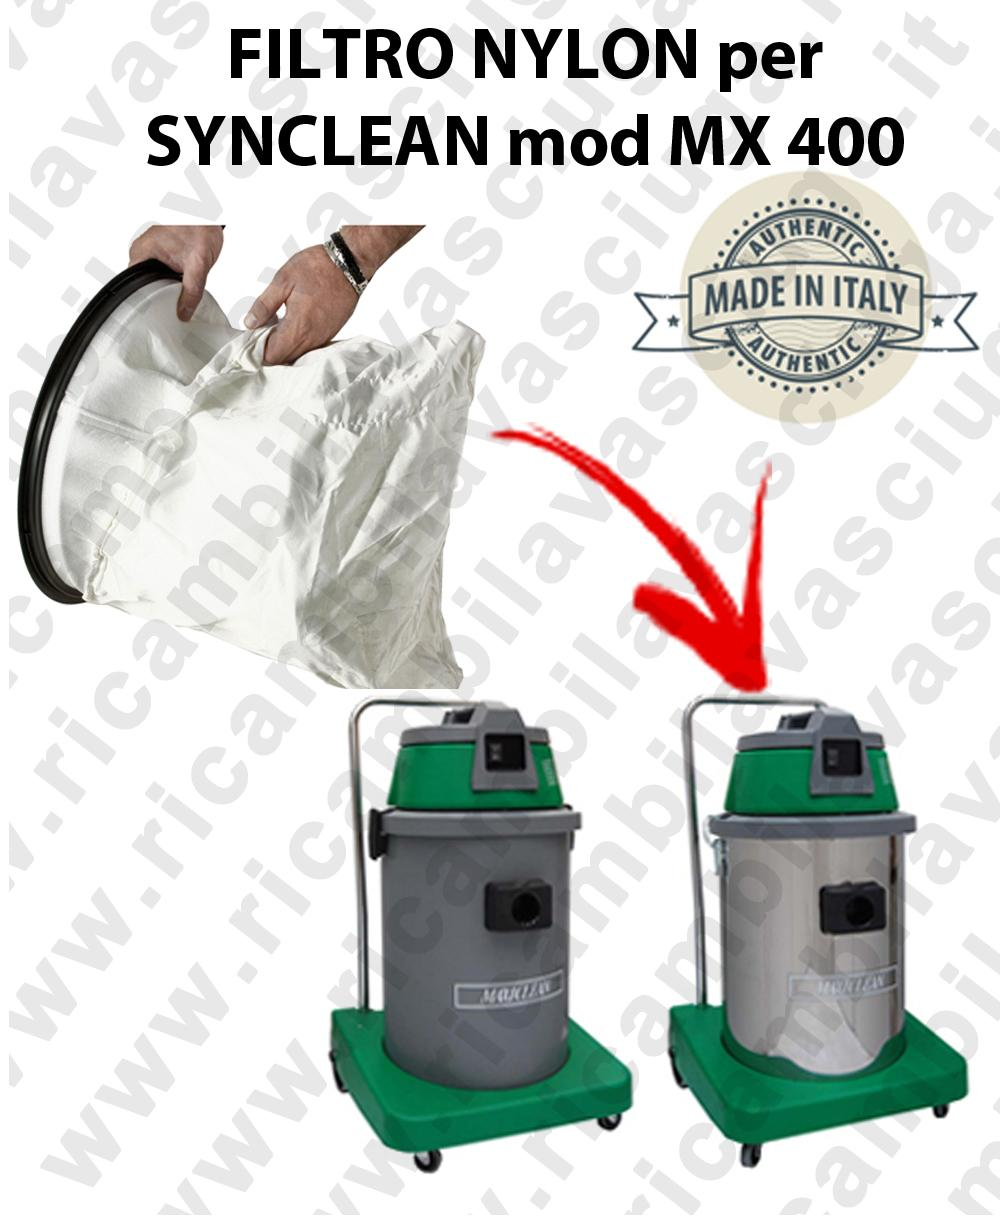 SAC FILTRE NYLON cod: 3001220 pour aspirateur MAXICLEAN Reference MX400 BY SYNCLEAN